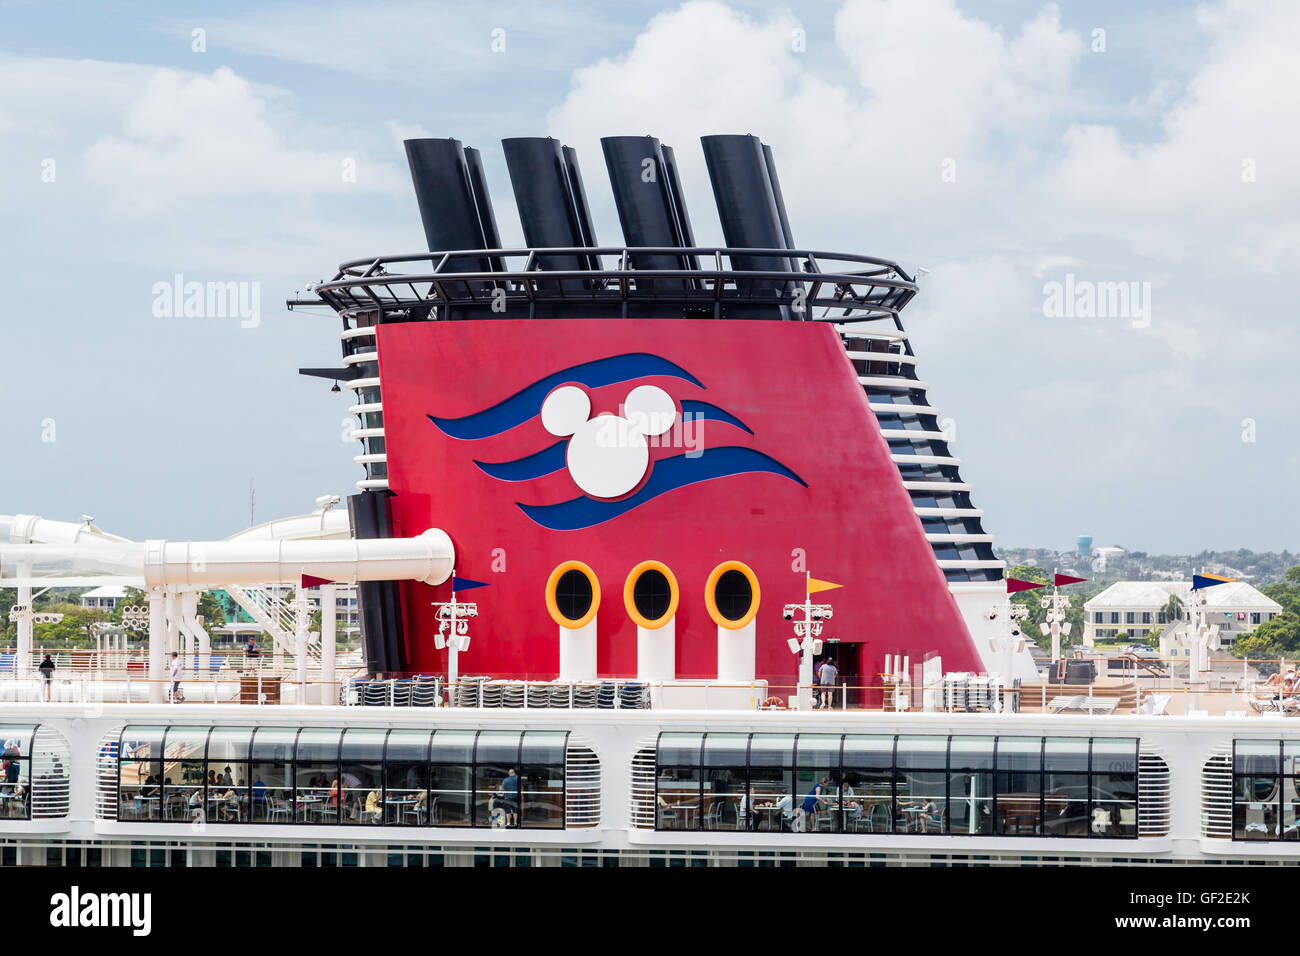 Disney Smoke Stack On Cruise Ship Stock Photo Royalty Free Image - Is there smoking on cruise ships